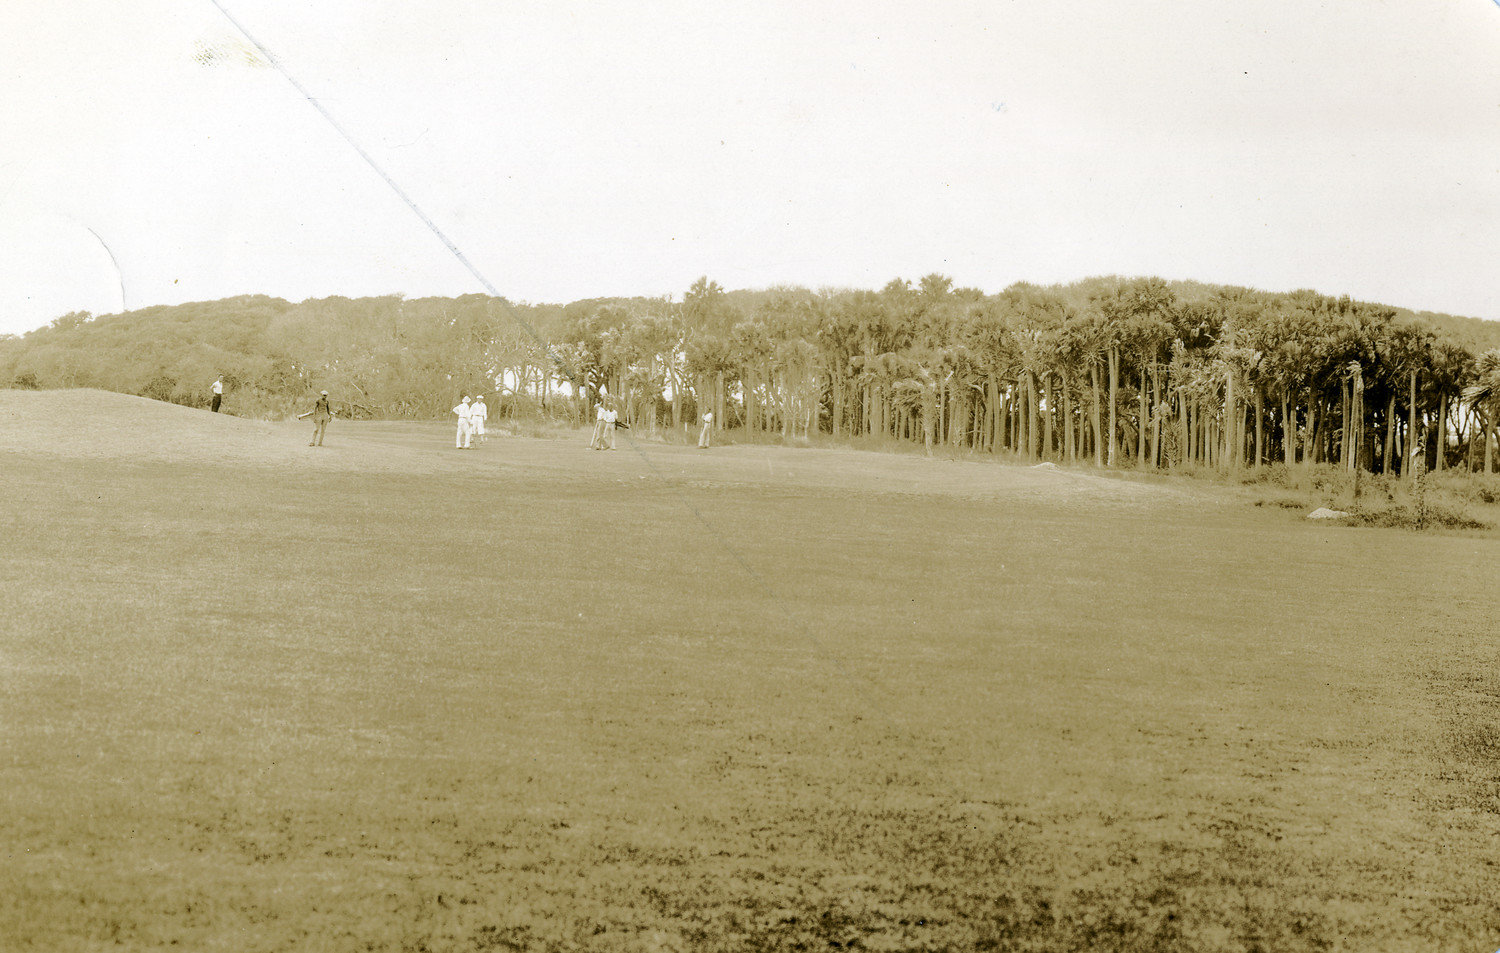 Golfers play on the 15th fairway of the Jacksonville Beach Golf Links course (later to become the Ponte Vedra Inn & Club.